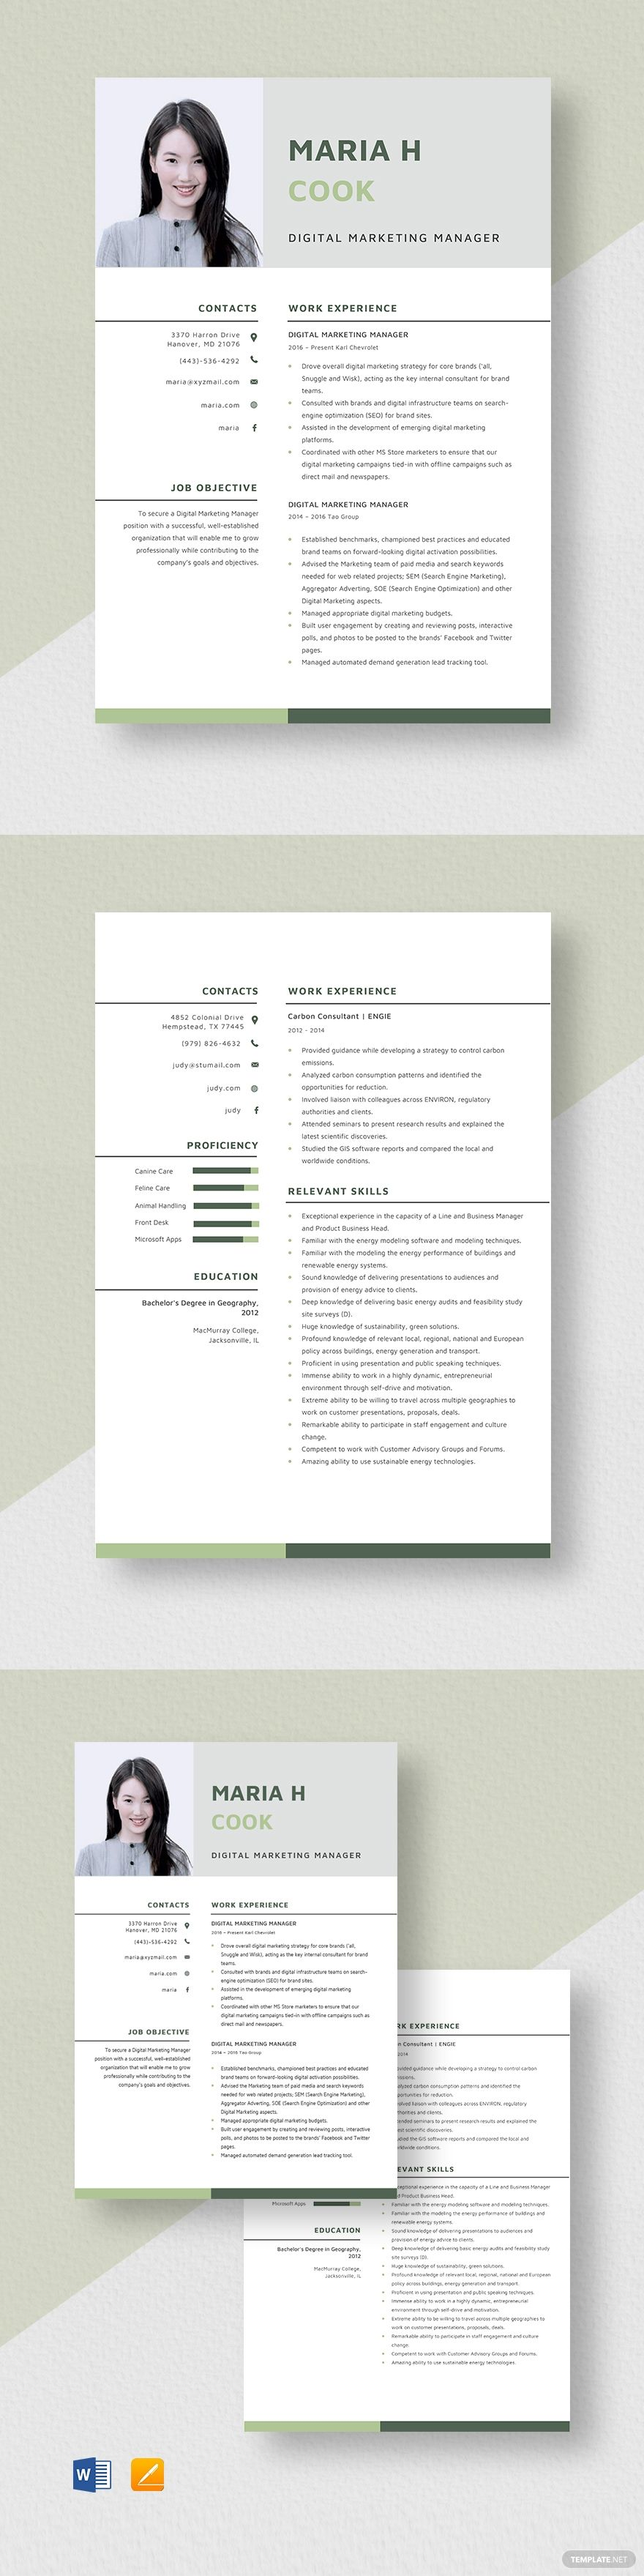 Pin On Presentation Template Indesign